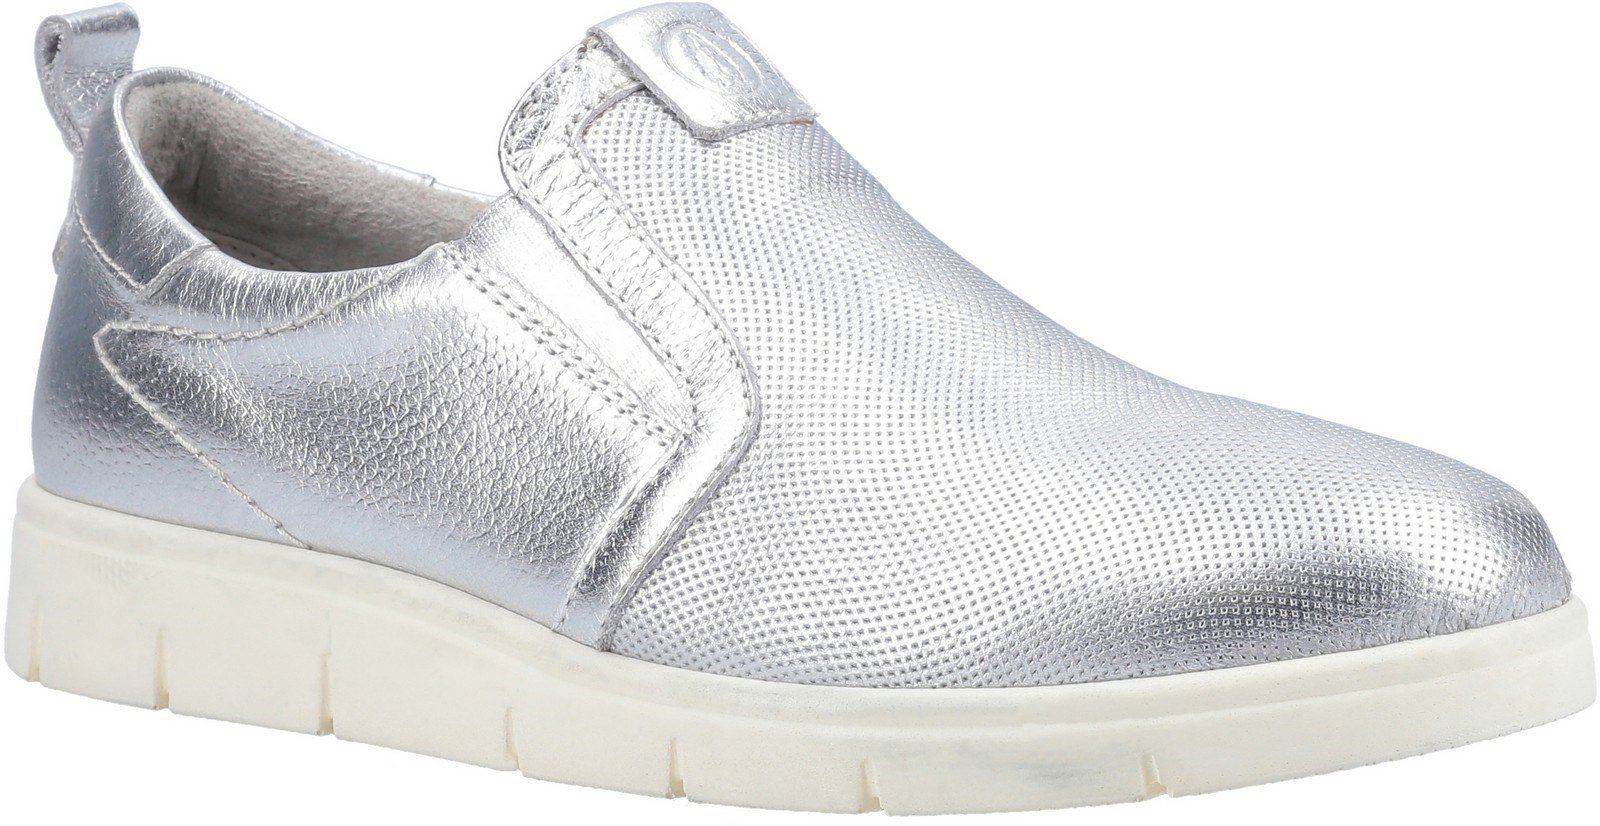 Hush Puppies Women's Lumi Slip On Trainer Various Colours 29232 - Silver 3